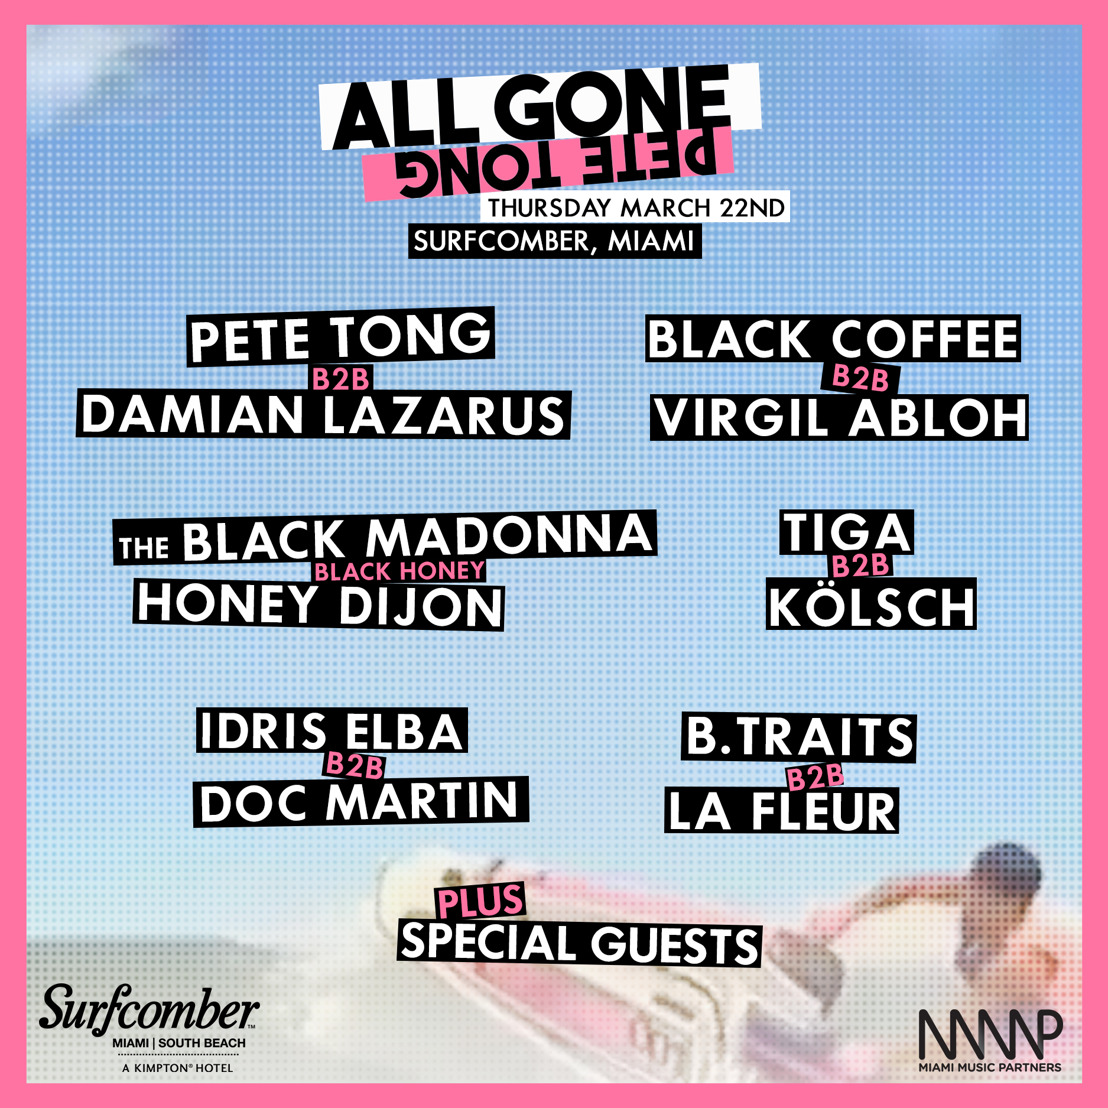 Pete Tong Returns to Miami Music Week for All Gone Pool Party - March 22nd - Surfcomber Miami